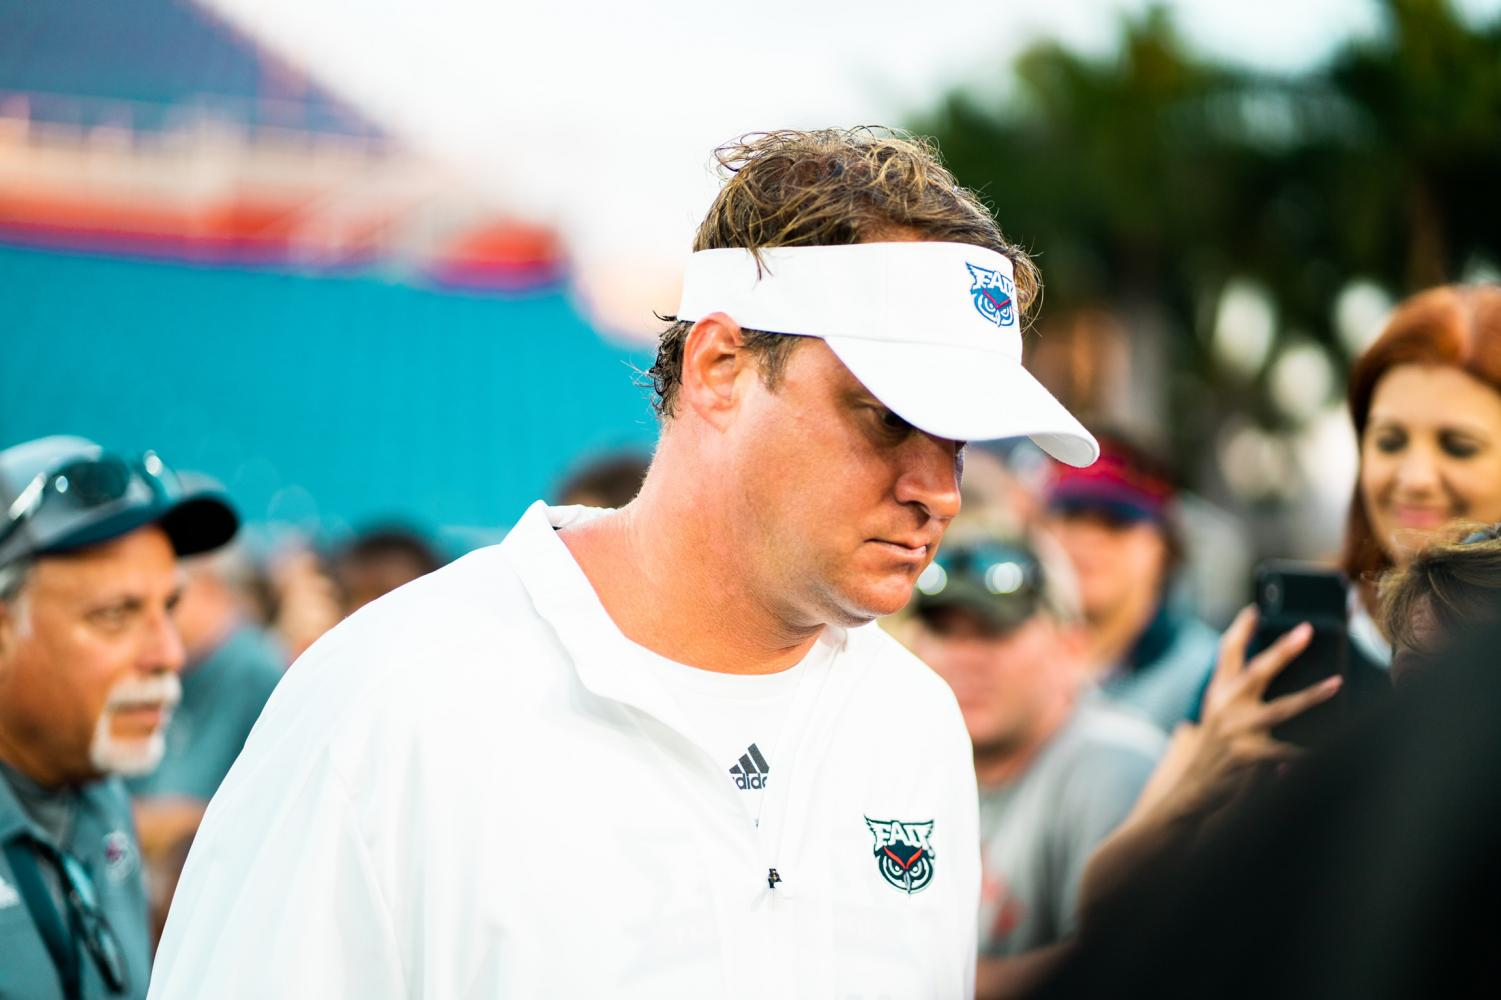 Lane Kiffin won his second conference title Saturday beating the UAB Blazers, 49-6. Photo by: Alex Liscio.